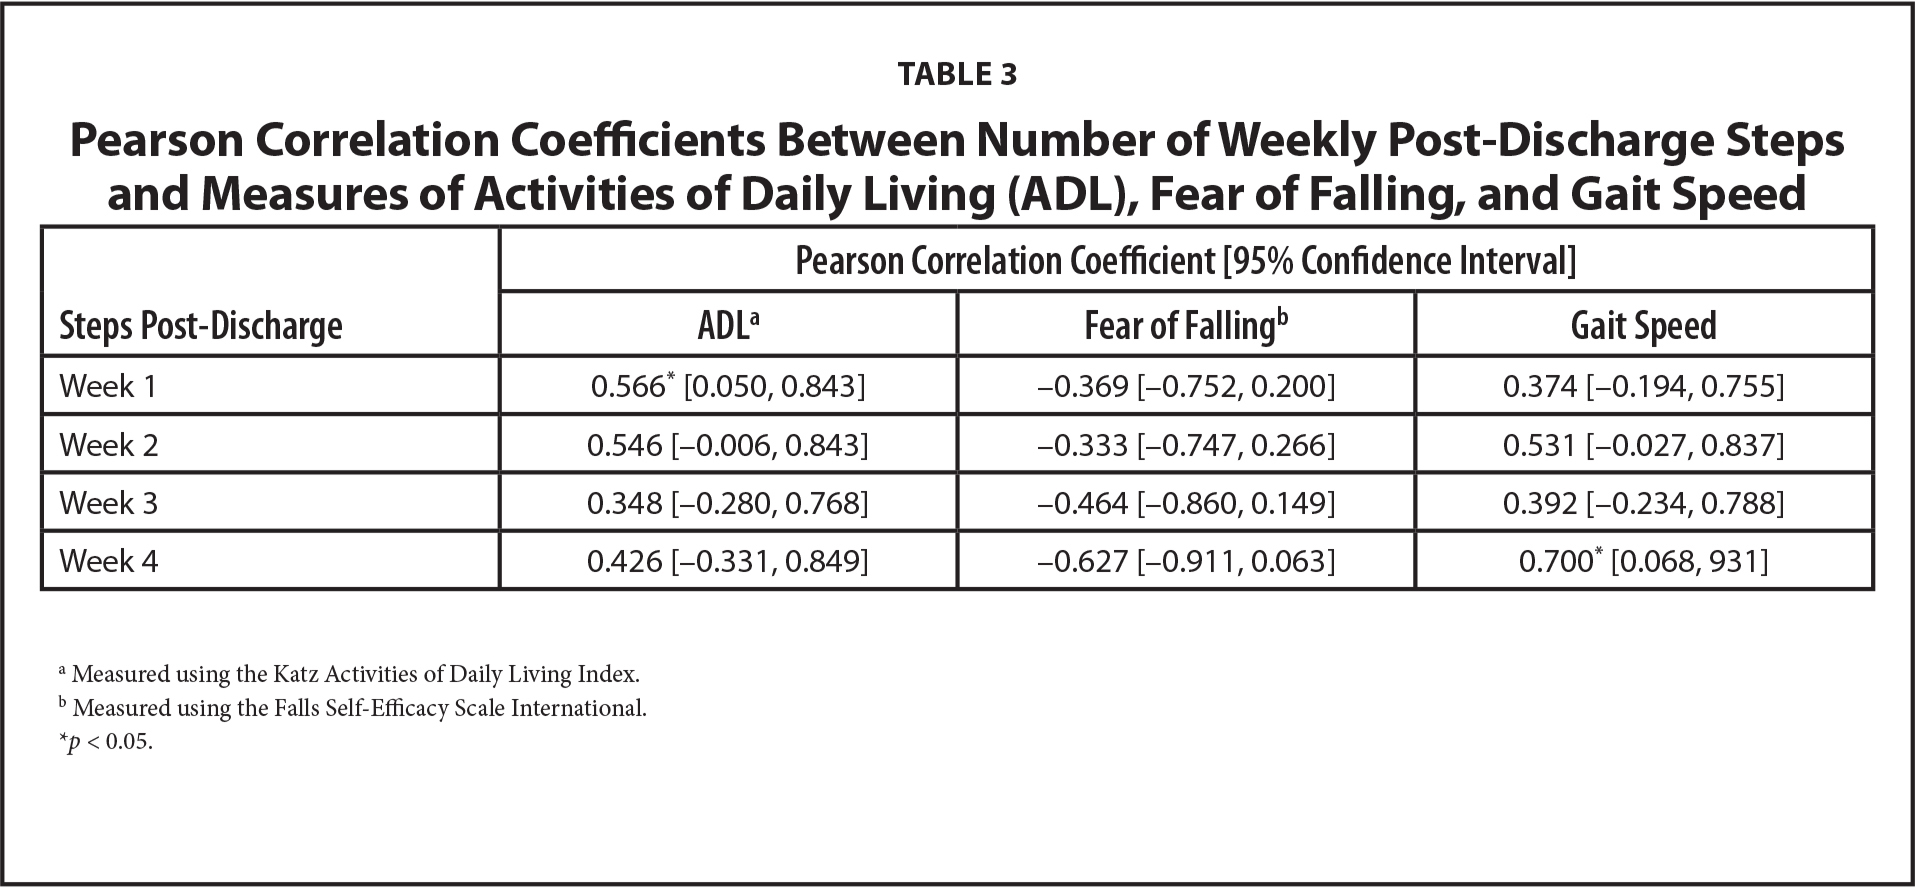 Pearson Correlation Coefficients Between Number of Weekly Post-Discharge Steps and Measures of Activities of Daily Living (ADL), Fear of Falling, and Gait Speed